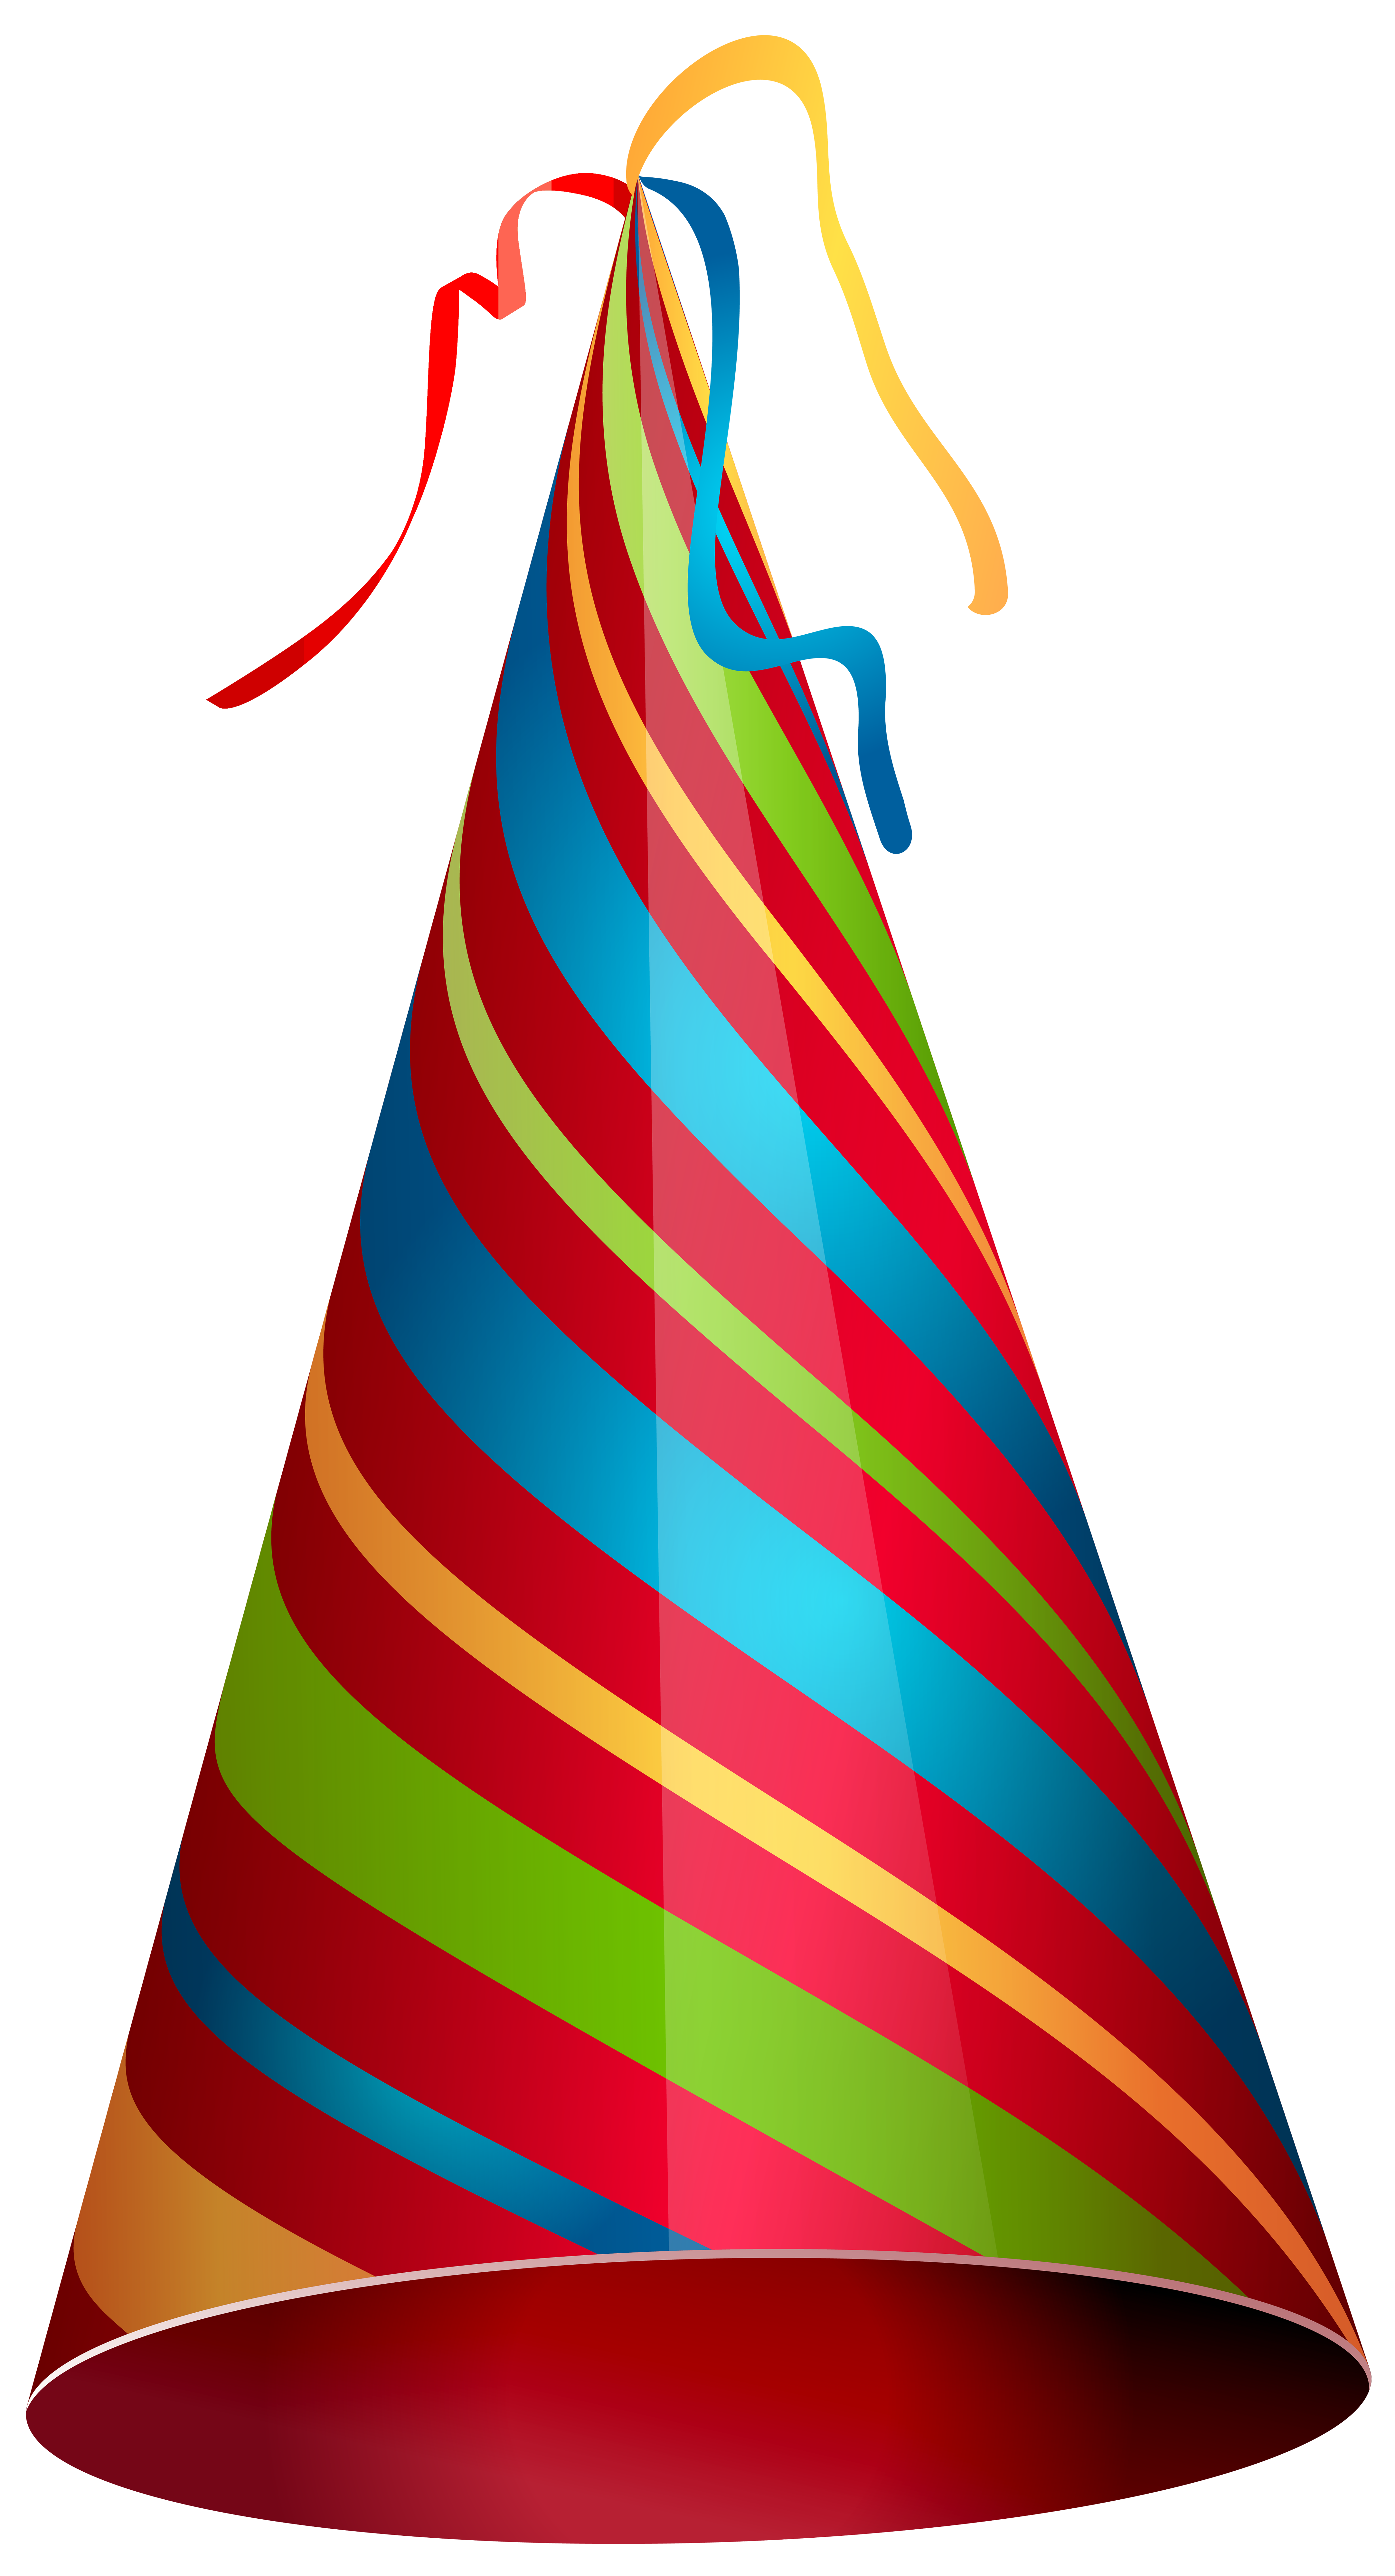 Colorful Party Hat Transparent PNG Clip Art Image.